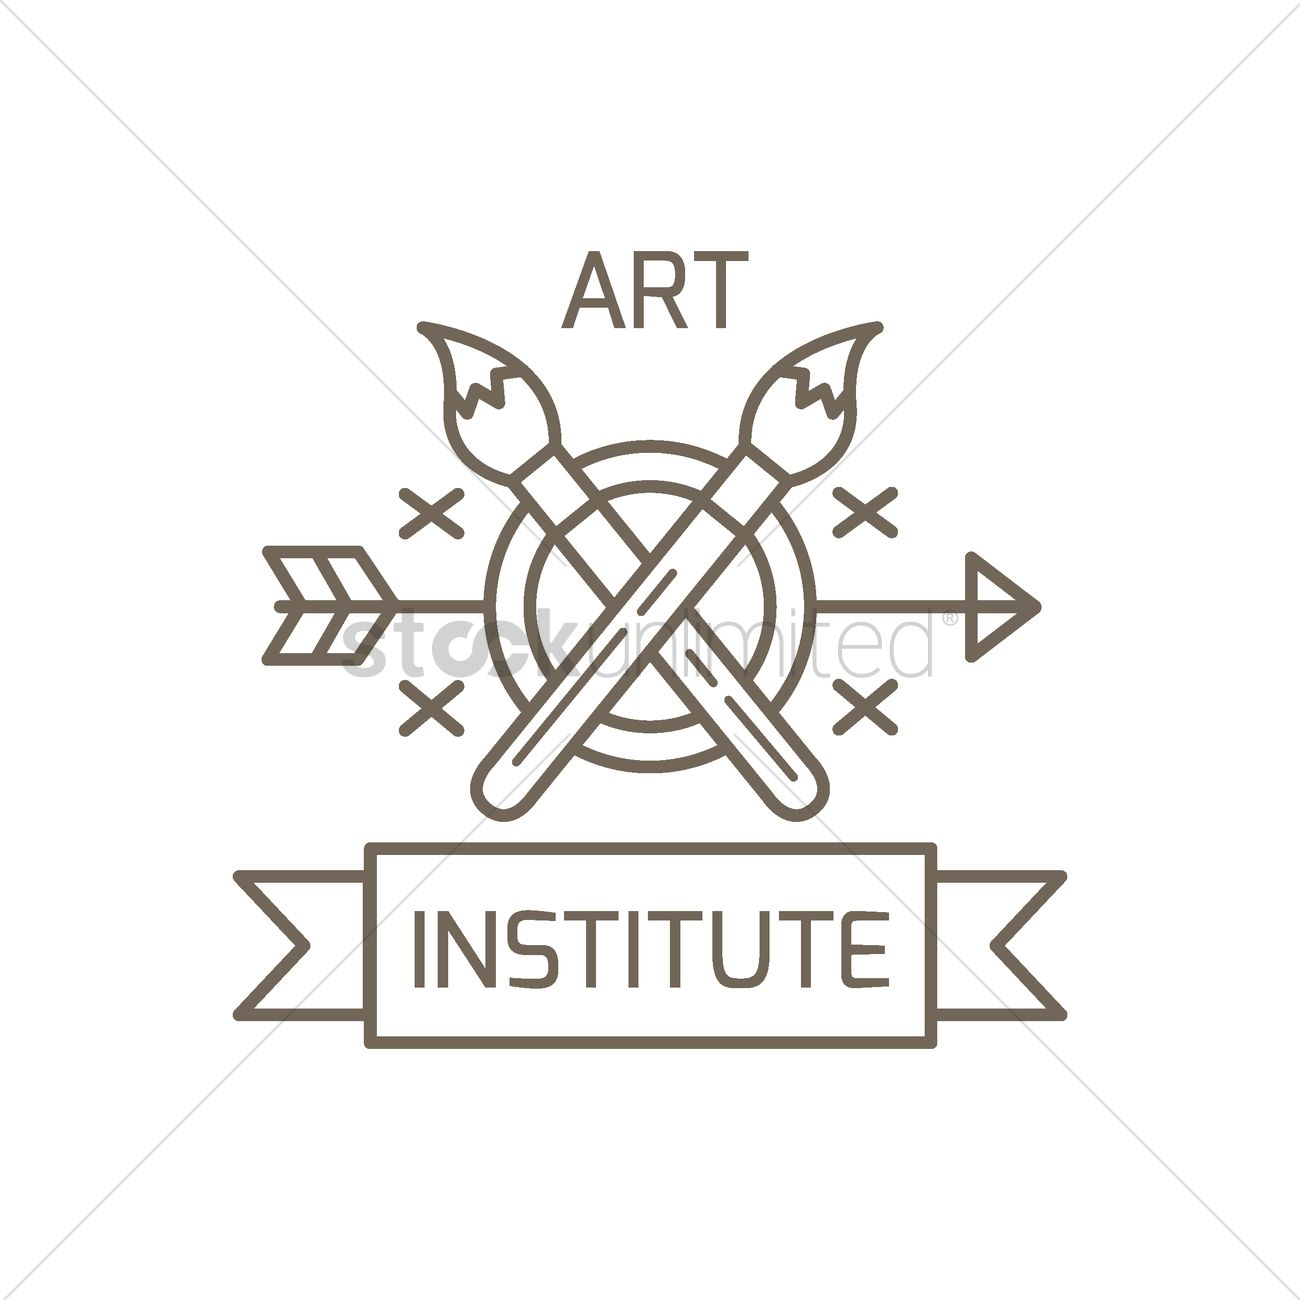 images?q=tbn:ANd9GcQh_l3eQ5xwiPy07kGEXjmjgmBKBRB7H2mRxCGhv1tFWg5c_mWT Best Of Art Institute Logo Vector @koolgadgetz.com.info